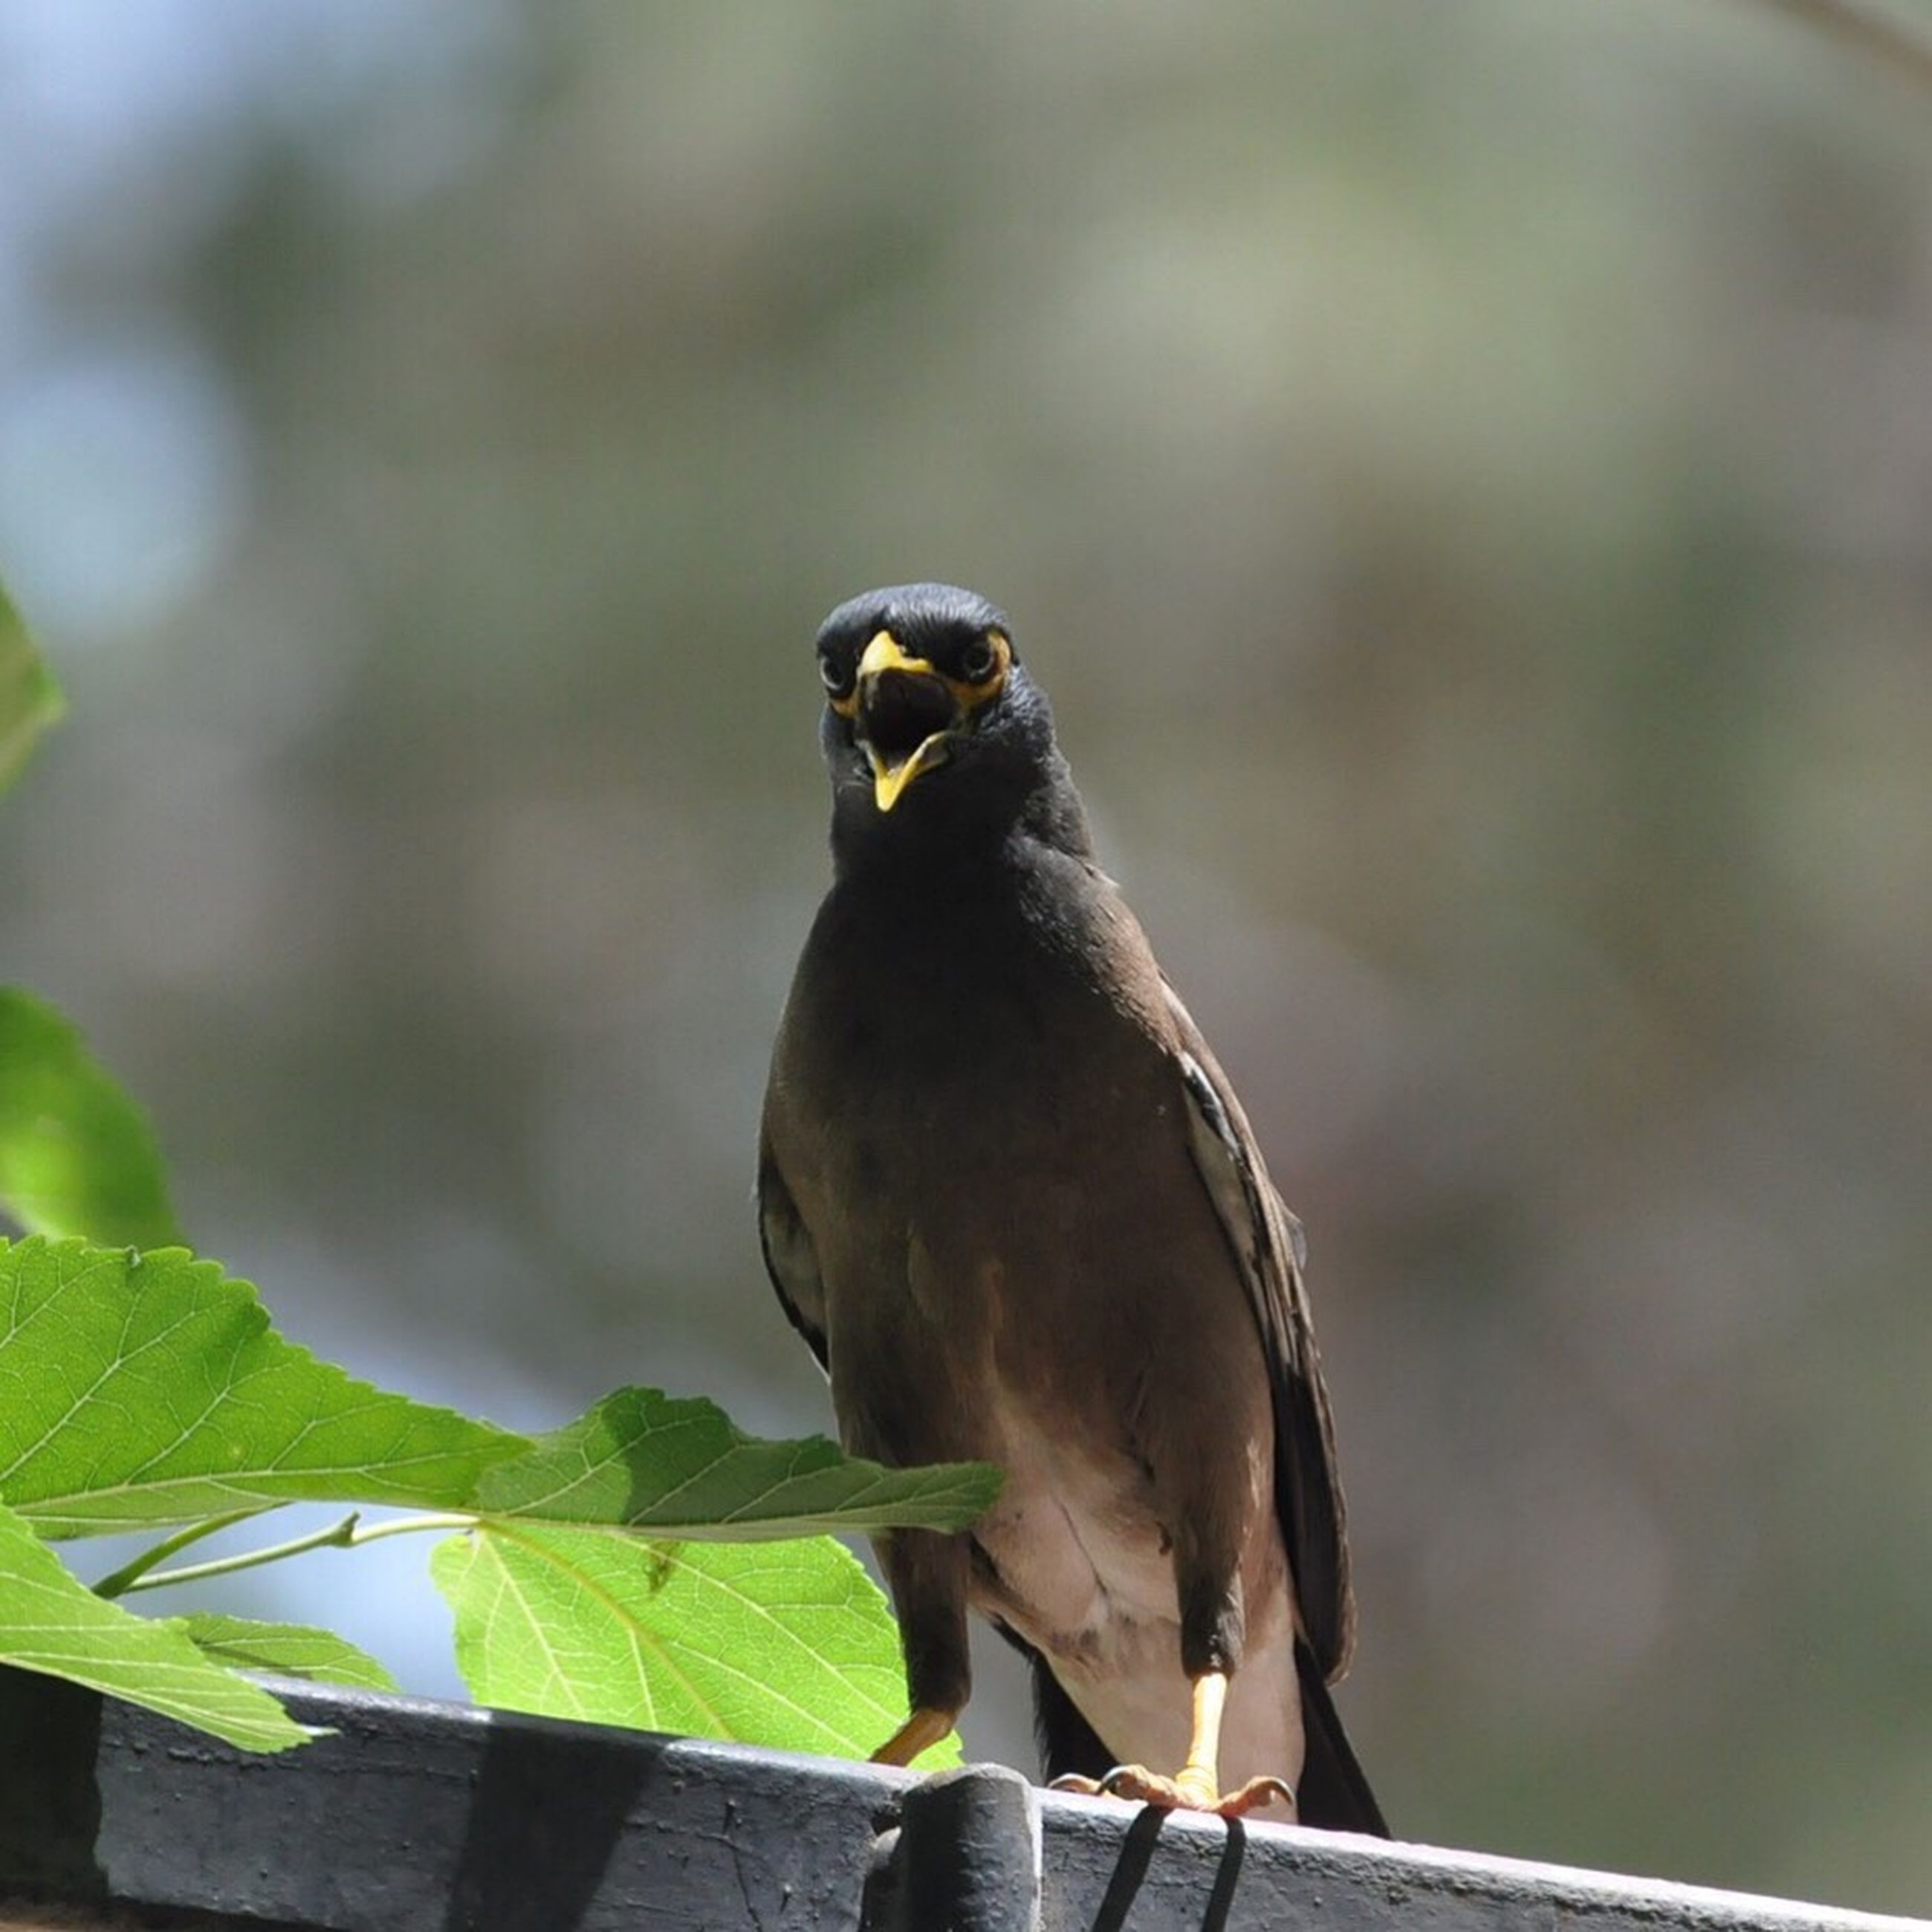 animal themes, one animal, bird, animals in the wild, focus on foreground, wildlife, perching, close-up, full length, nature, outdoors, side view, looking away, branch, day, beak, no people, zoology, black color, selective focus